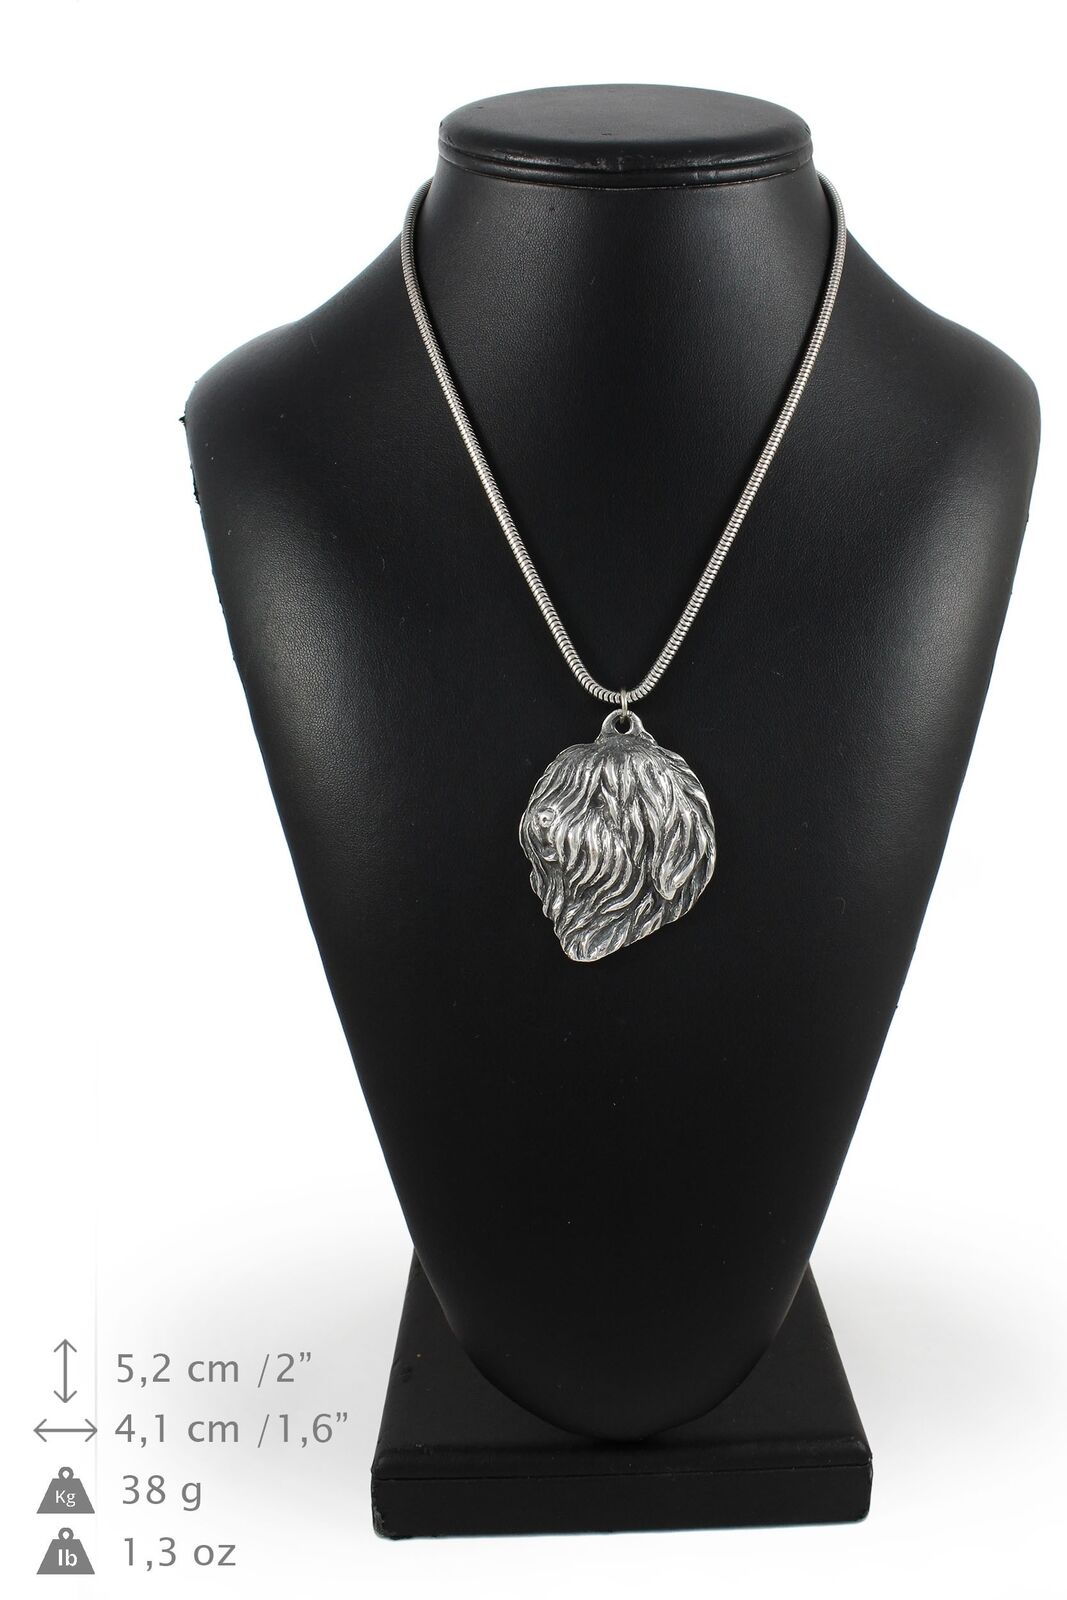 Lowland Sheepdog - Silber plated necklace with Silber cord, high quality, Art Do